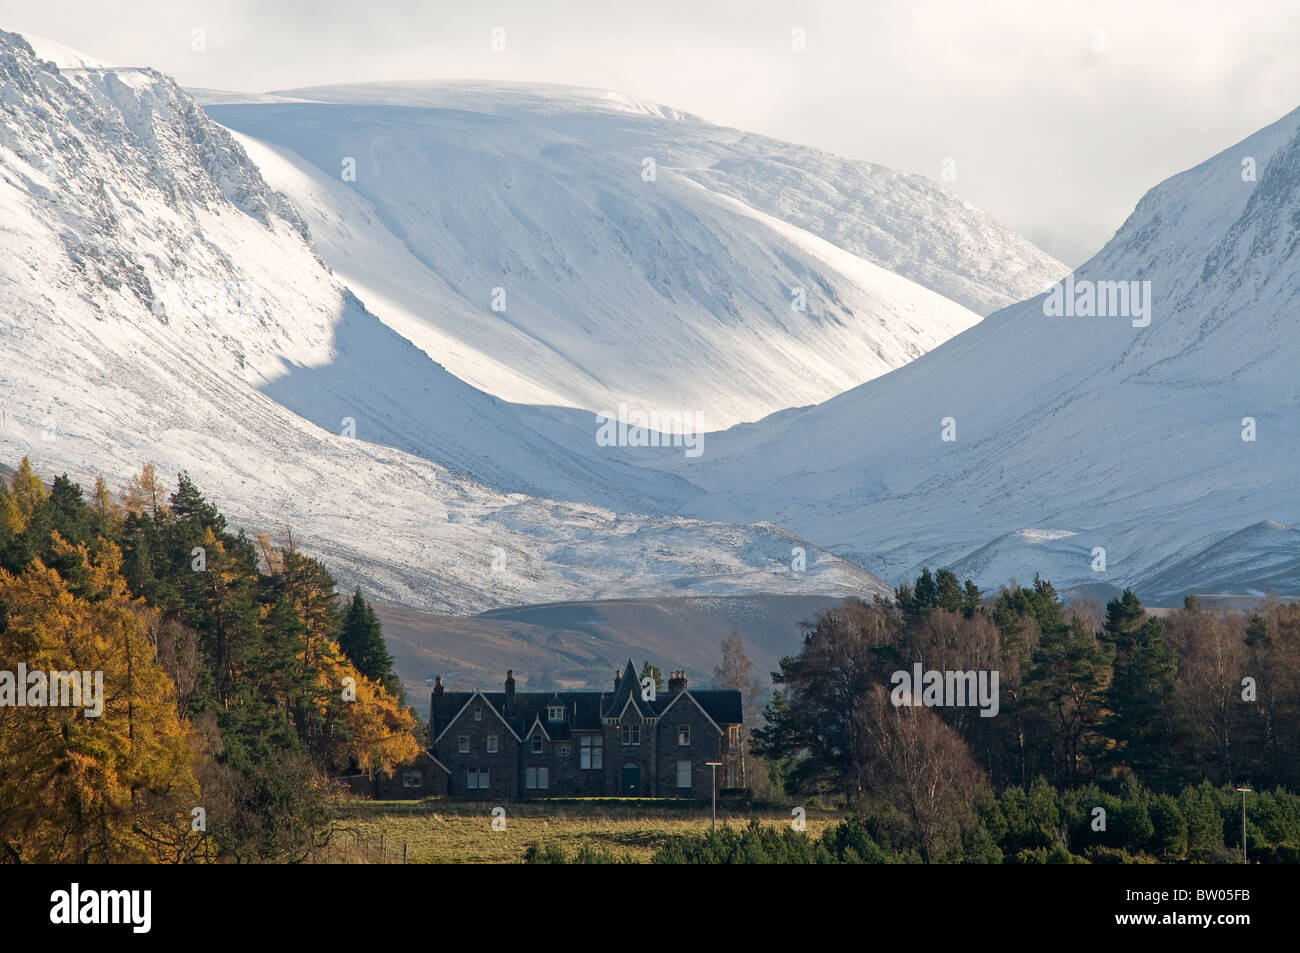 Drumintoul Lodge Rothiemurchus Aviemore, beneath the Lairig Ghru Pass in the Cairngorms. SCO 6983 Stock Photo